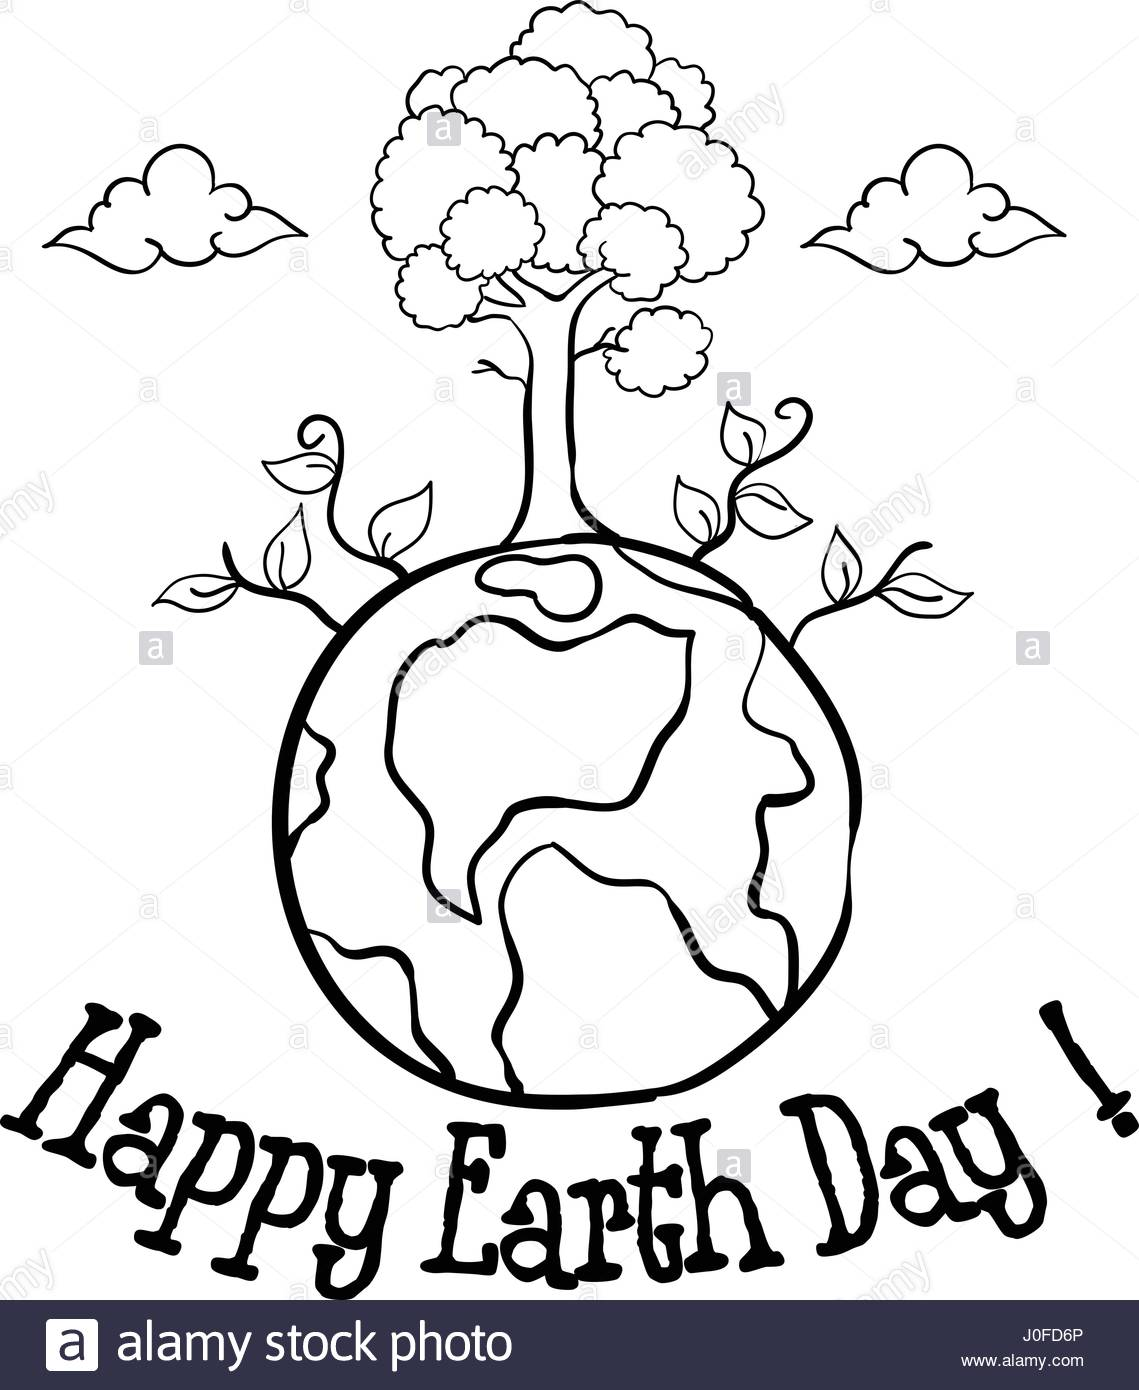 1139x1390 Happy Earth Day With Tree Hand Draw Stock Vector Art